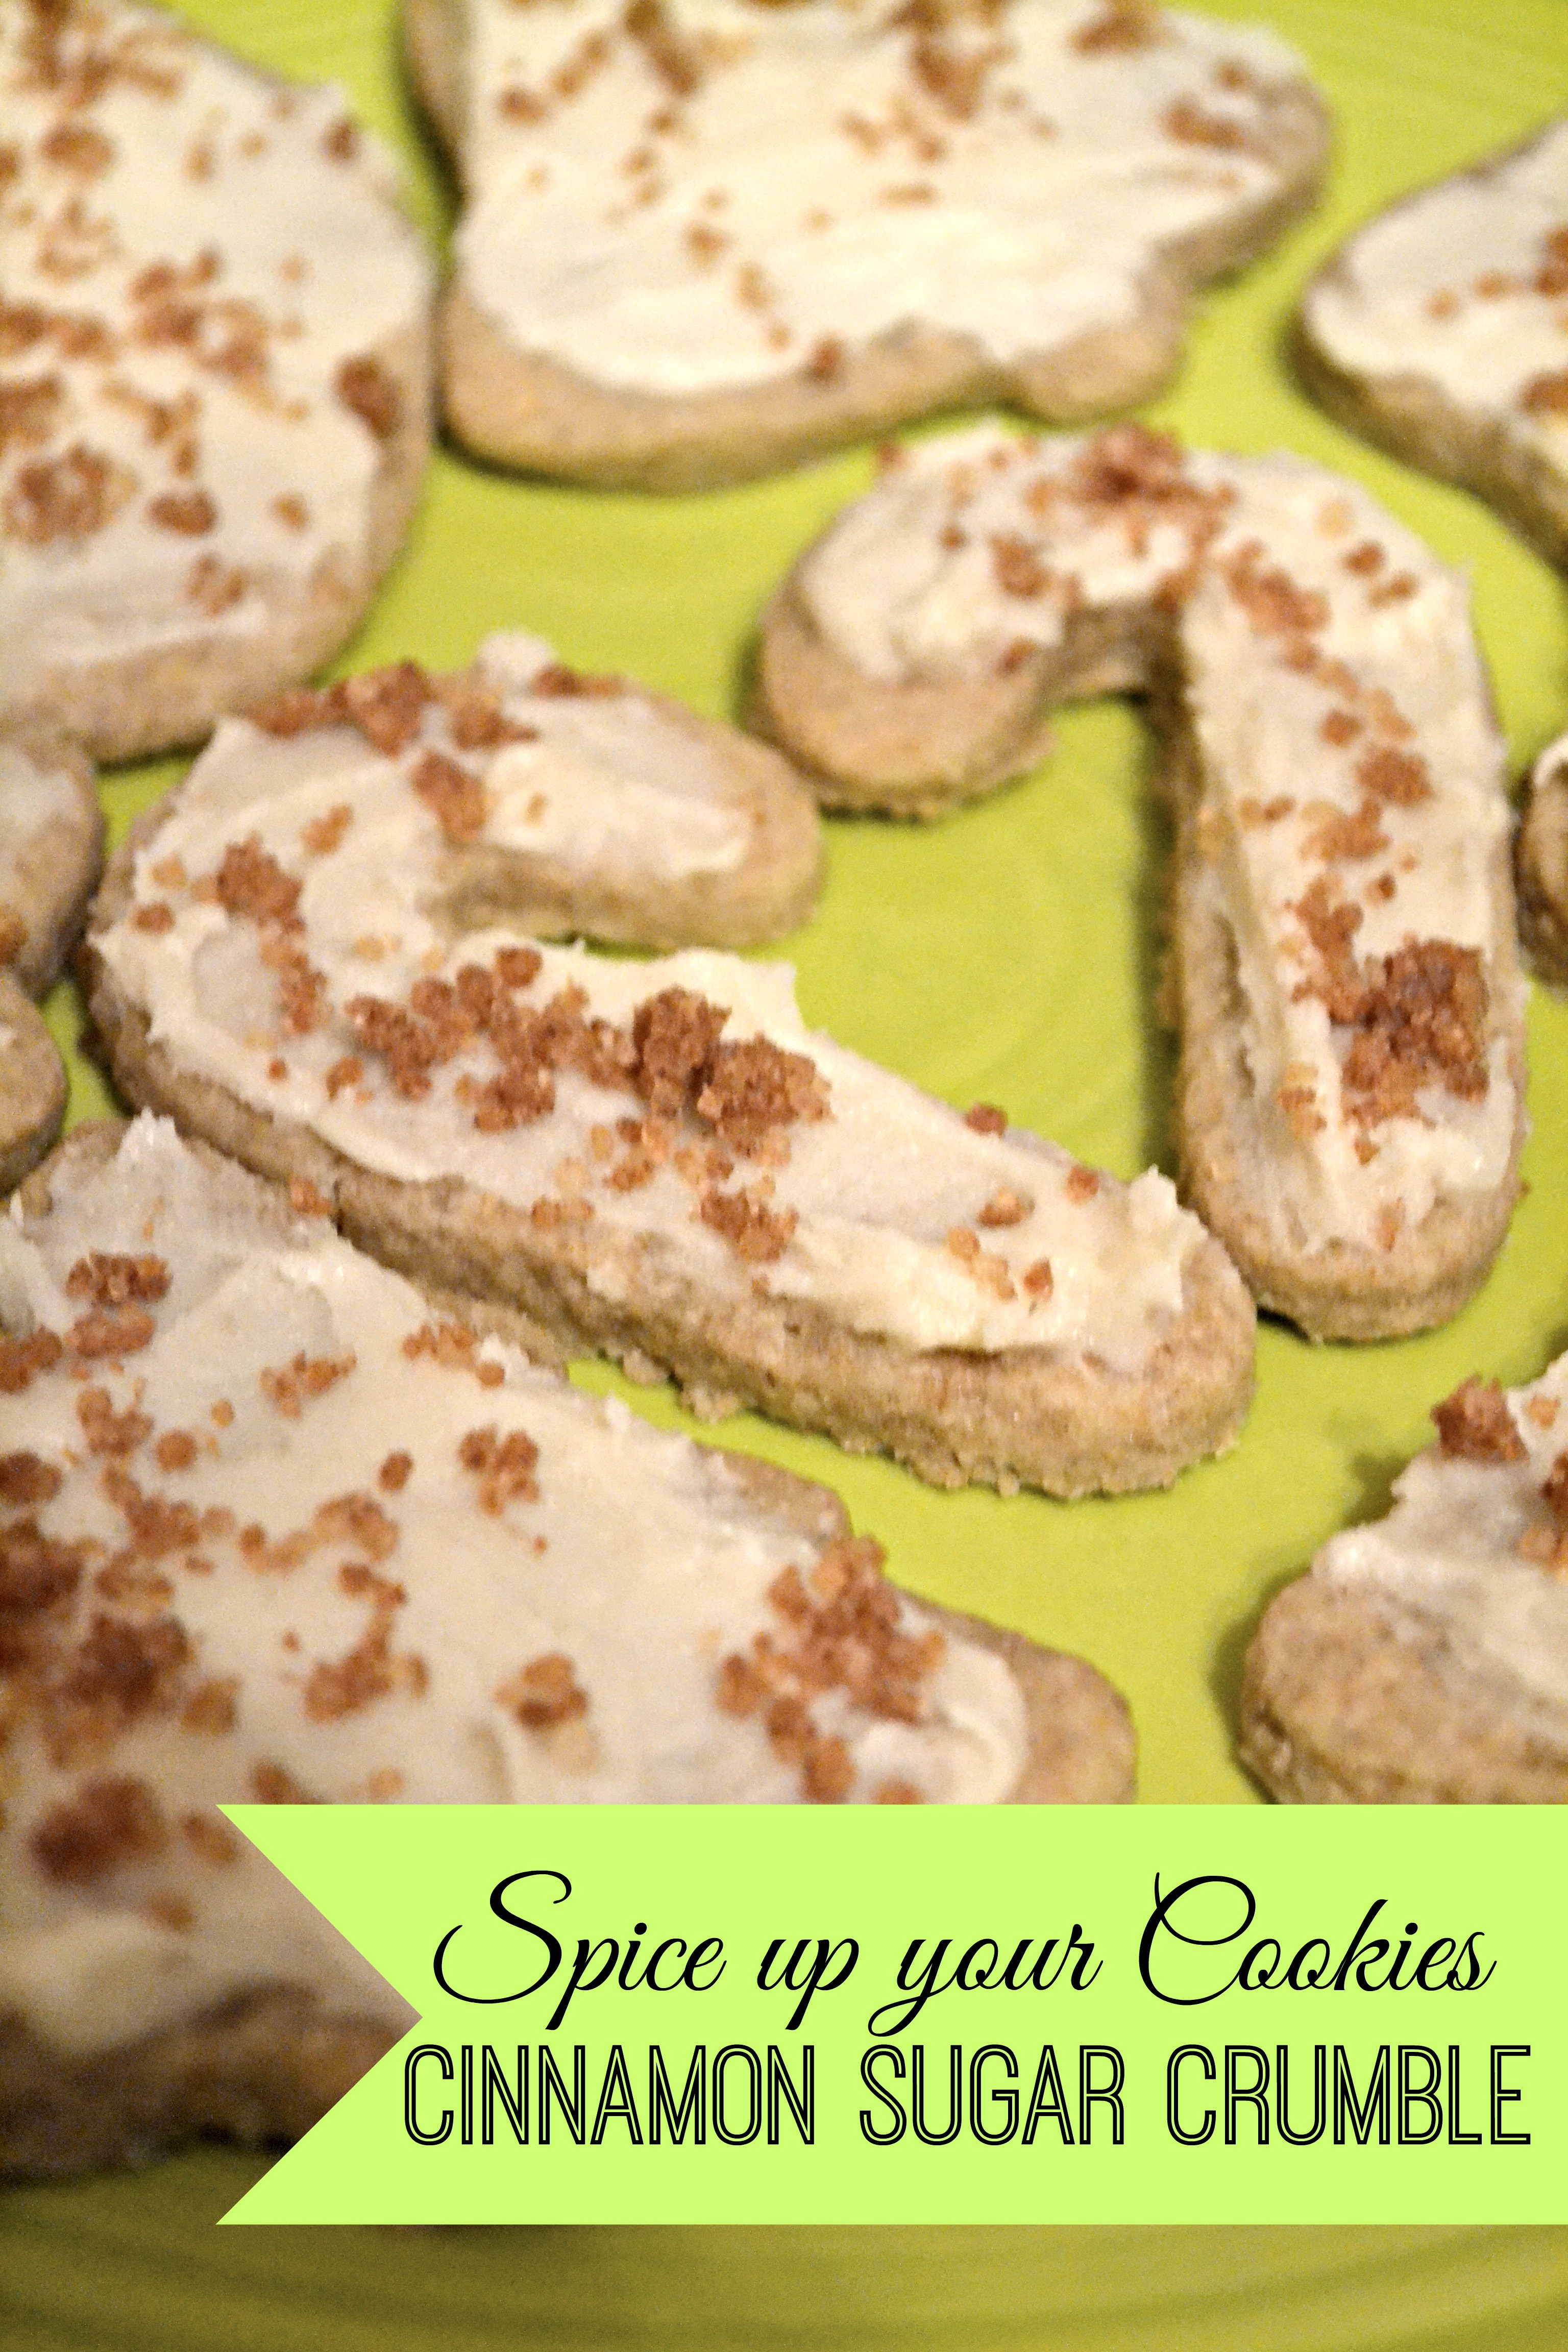 Spice Up Your Cookies, Cinnamon Sugar Crumble Recipe